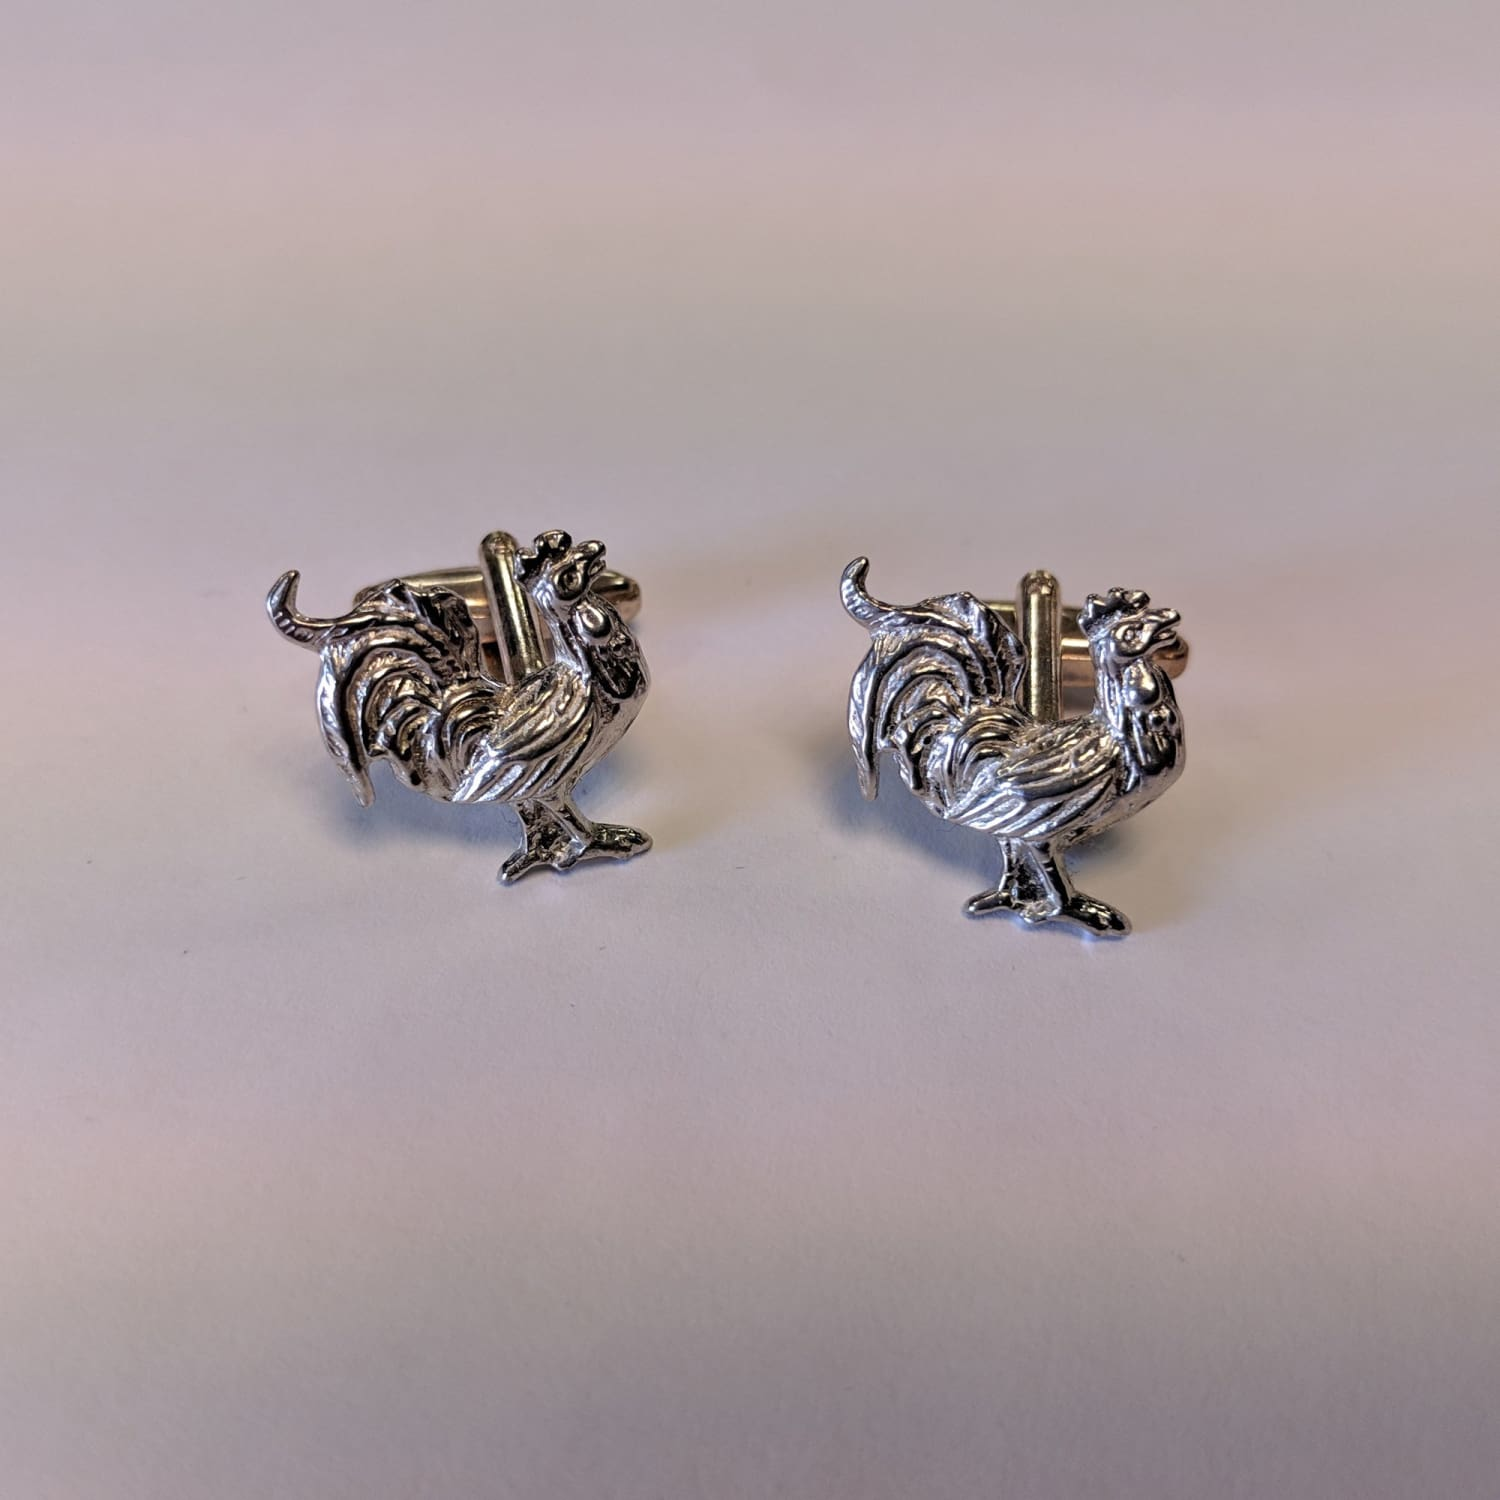 Cufflinks - Cockerel 1